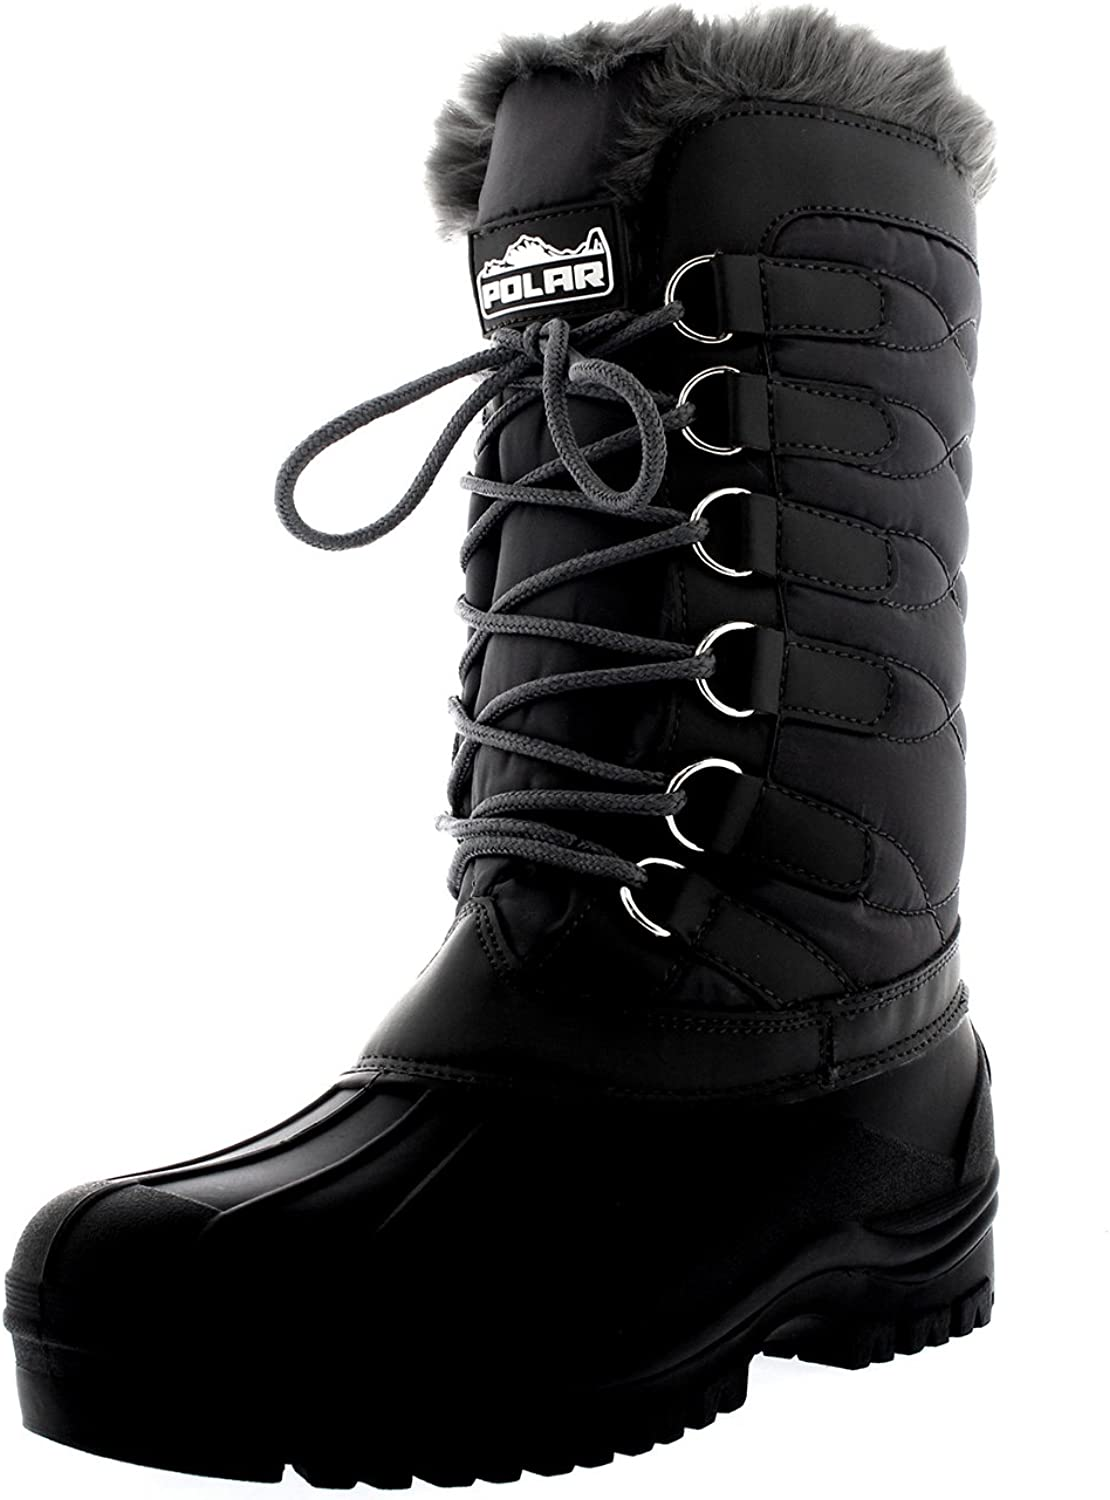 Polar Womens Nylon Cold Weather Outdoor Snow Duck Winter Rain Lace Boot - 9 - GRE40 YC0136